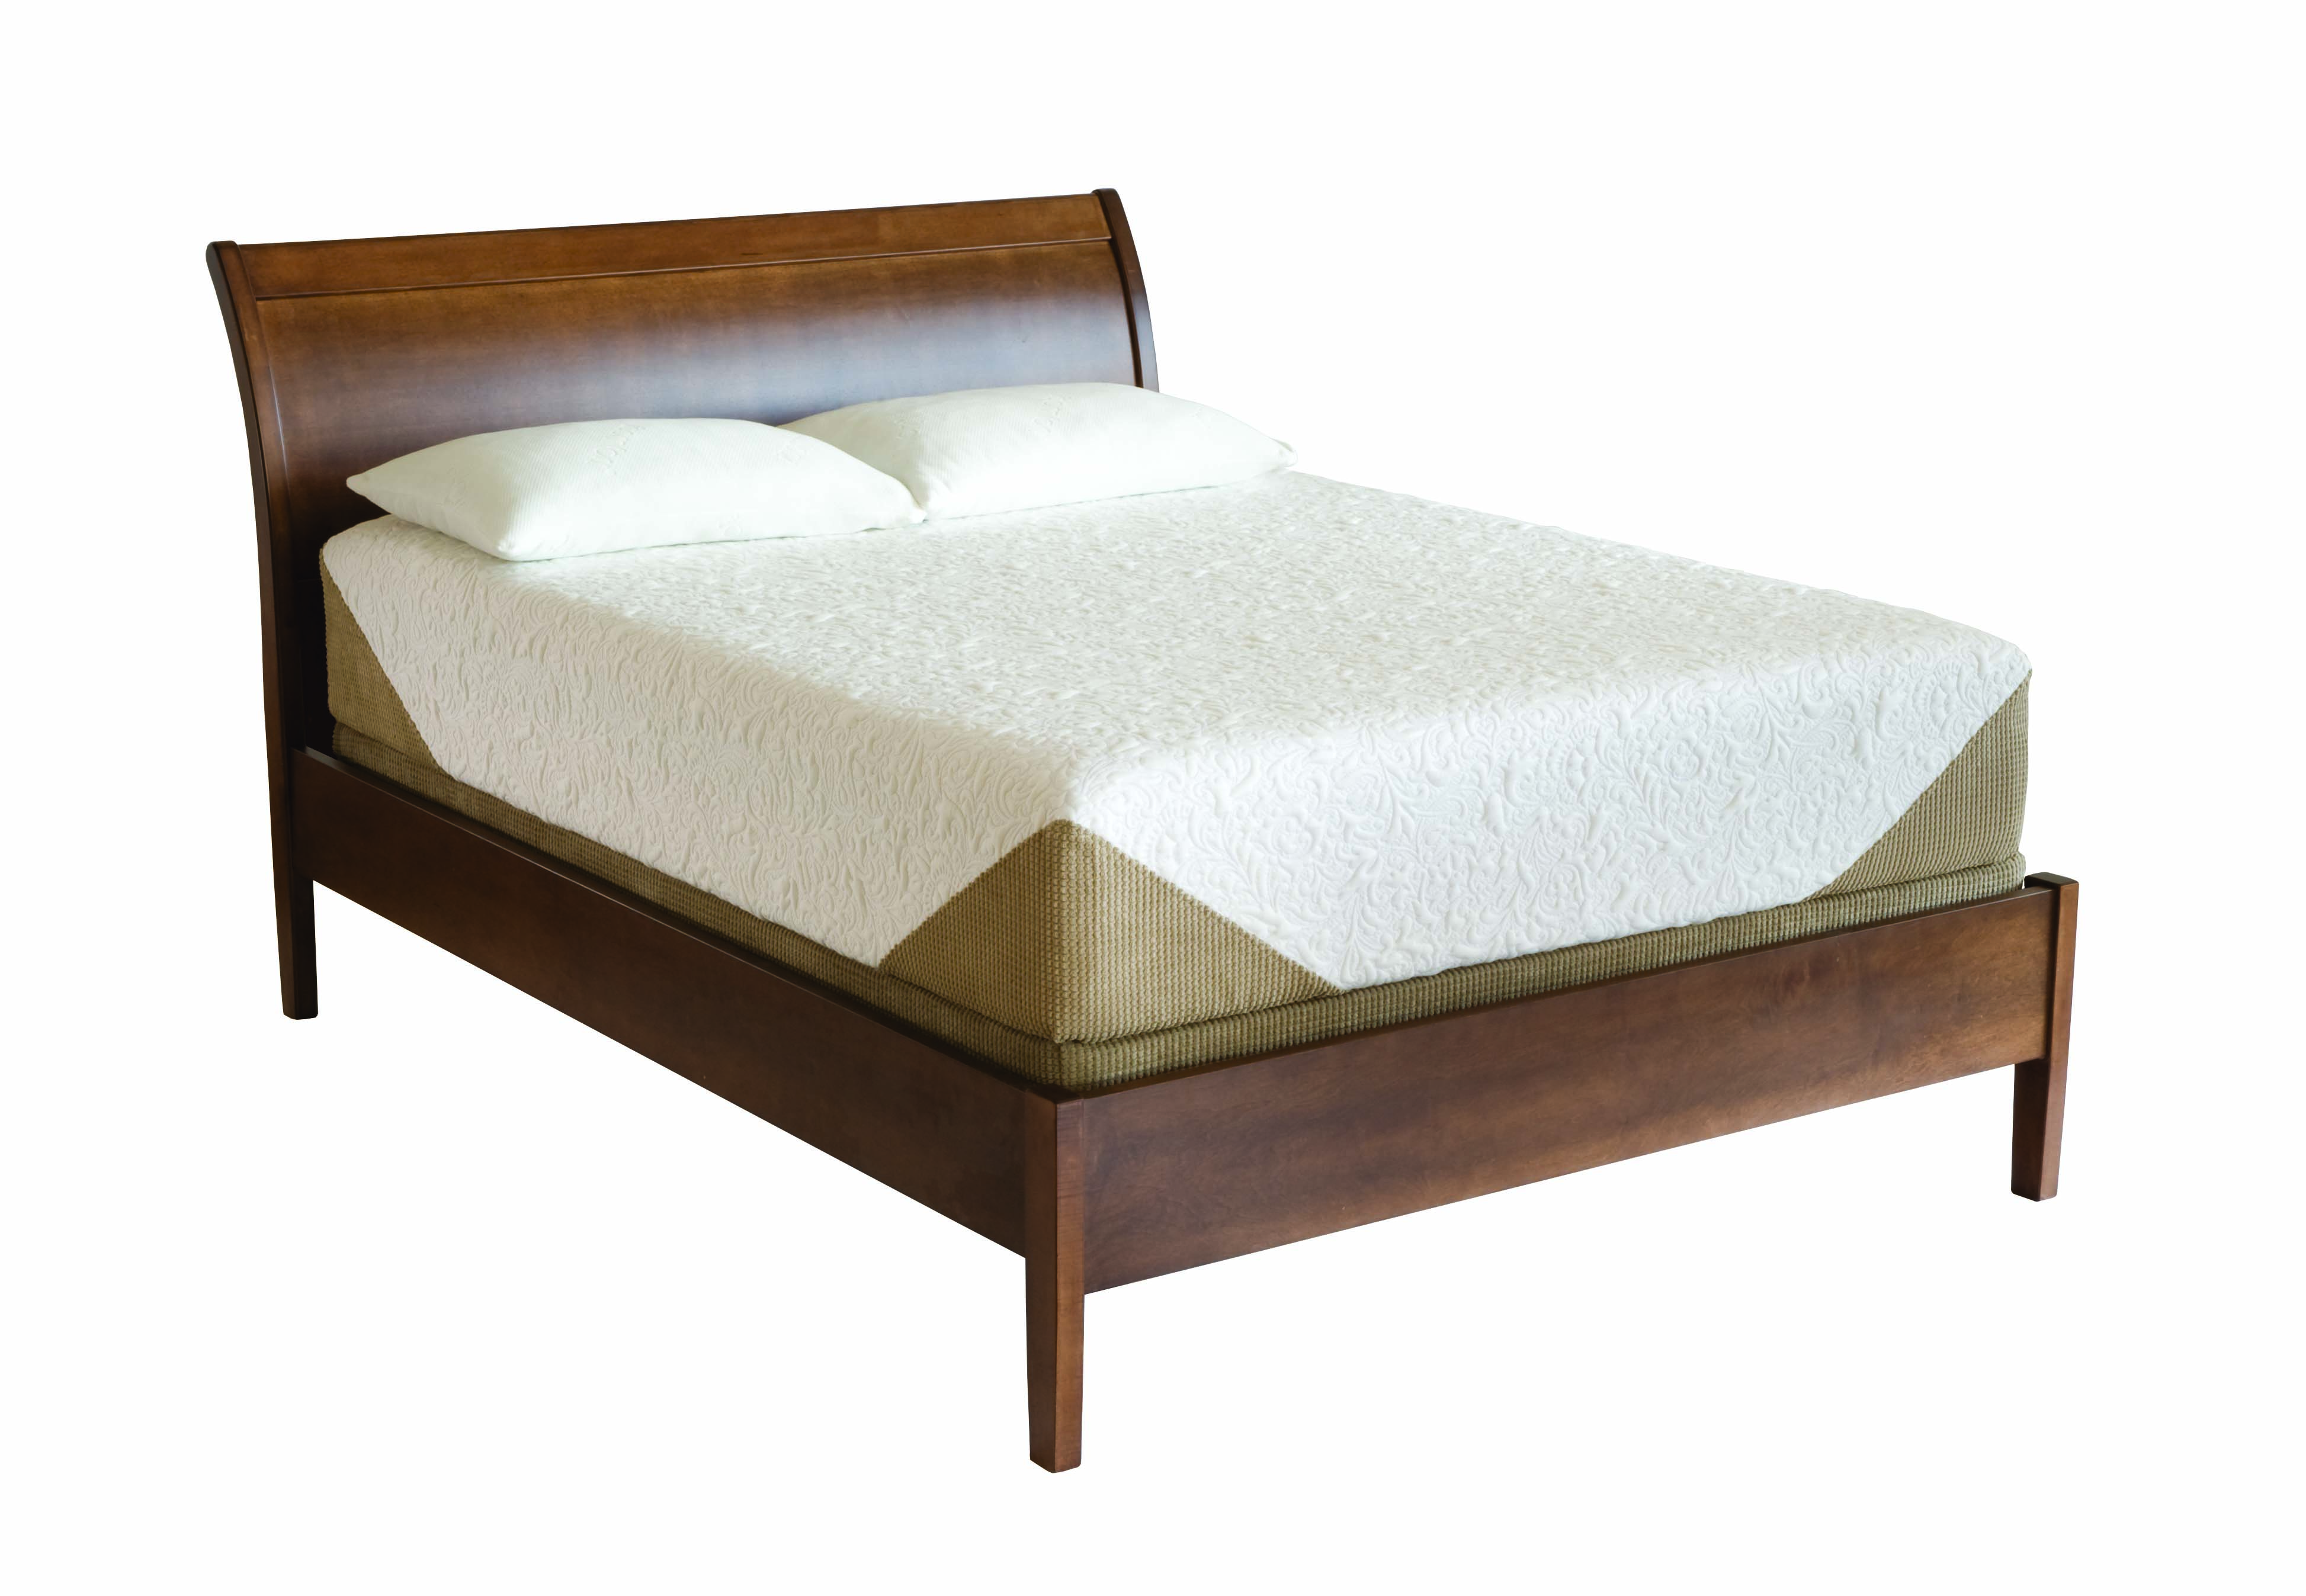 Serta Icomfort All Icomfort Mattresses Feature A Luxurious